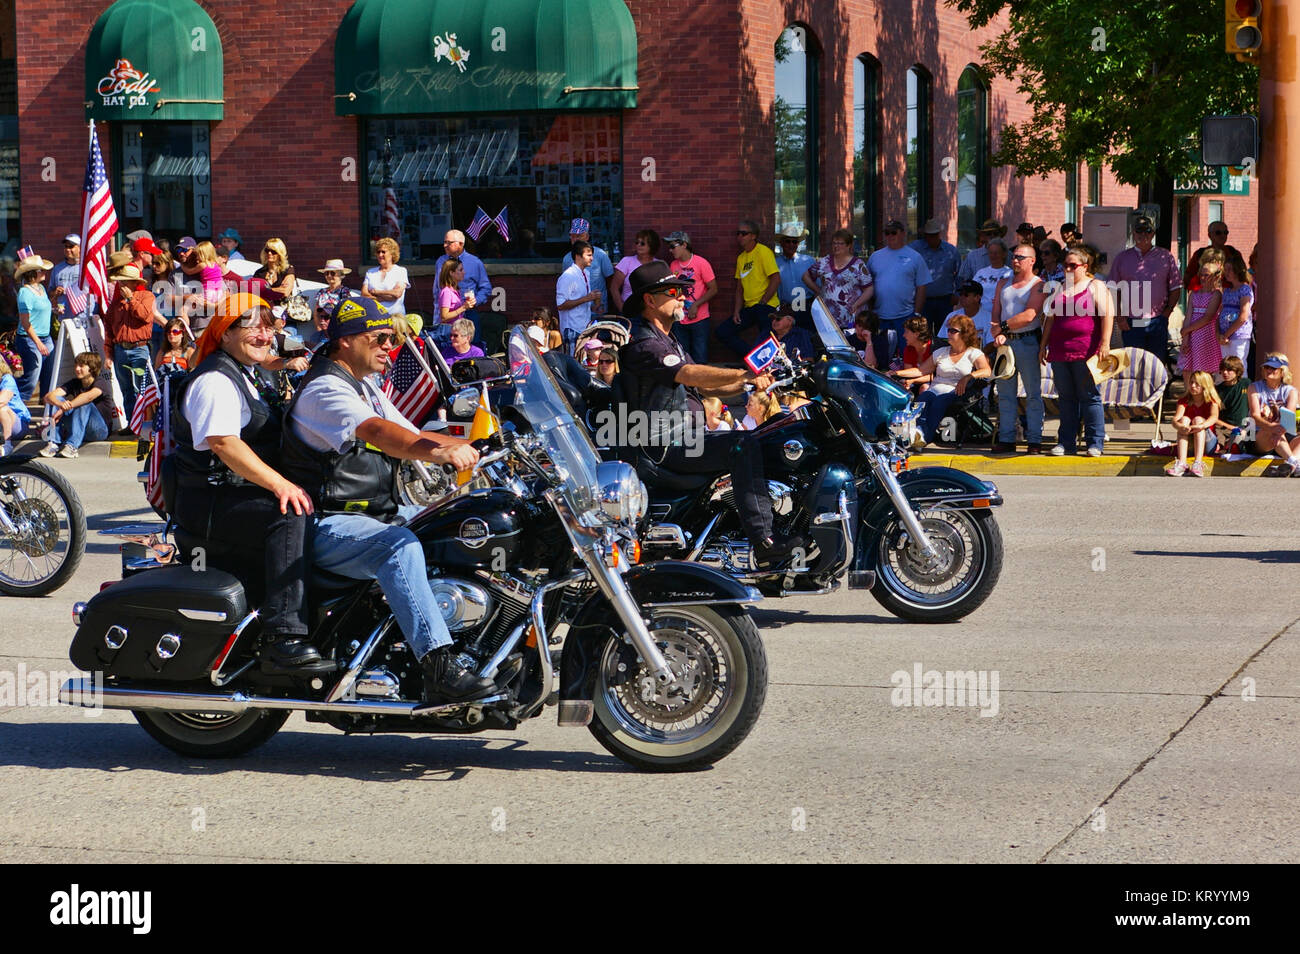 motorcycle riding in new mexico